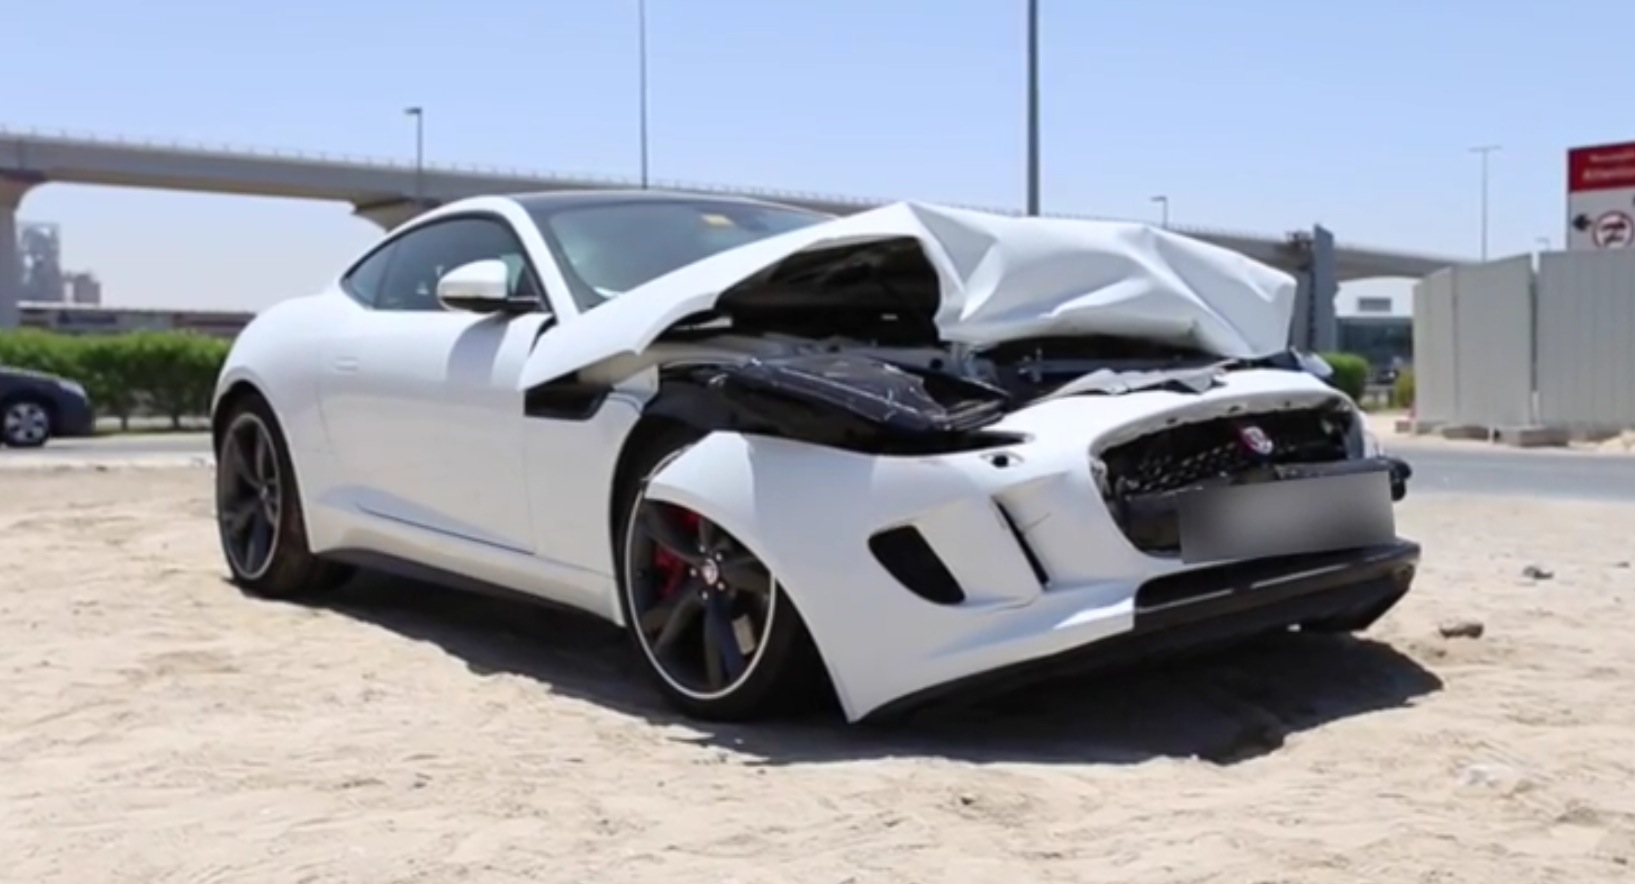 jaguar f type r coupe wrecked in dubai autoevolution. Black Bedroom Furniture Sets. Home Design Ideas